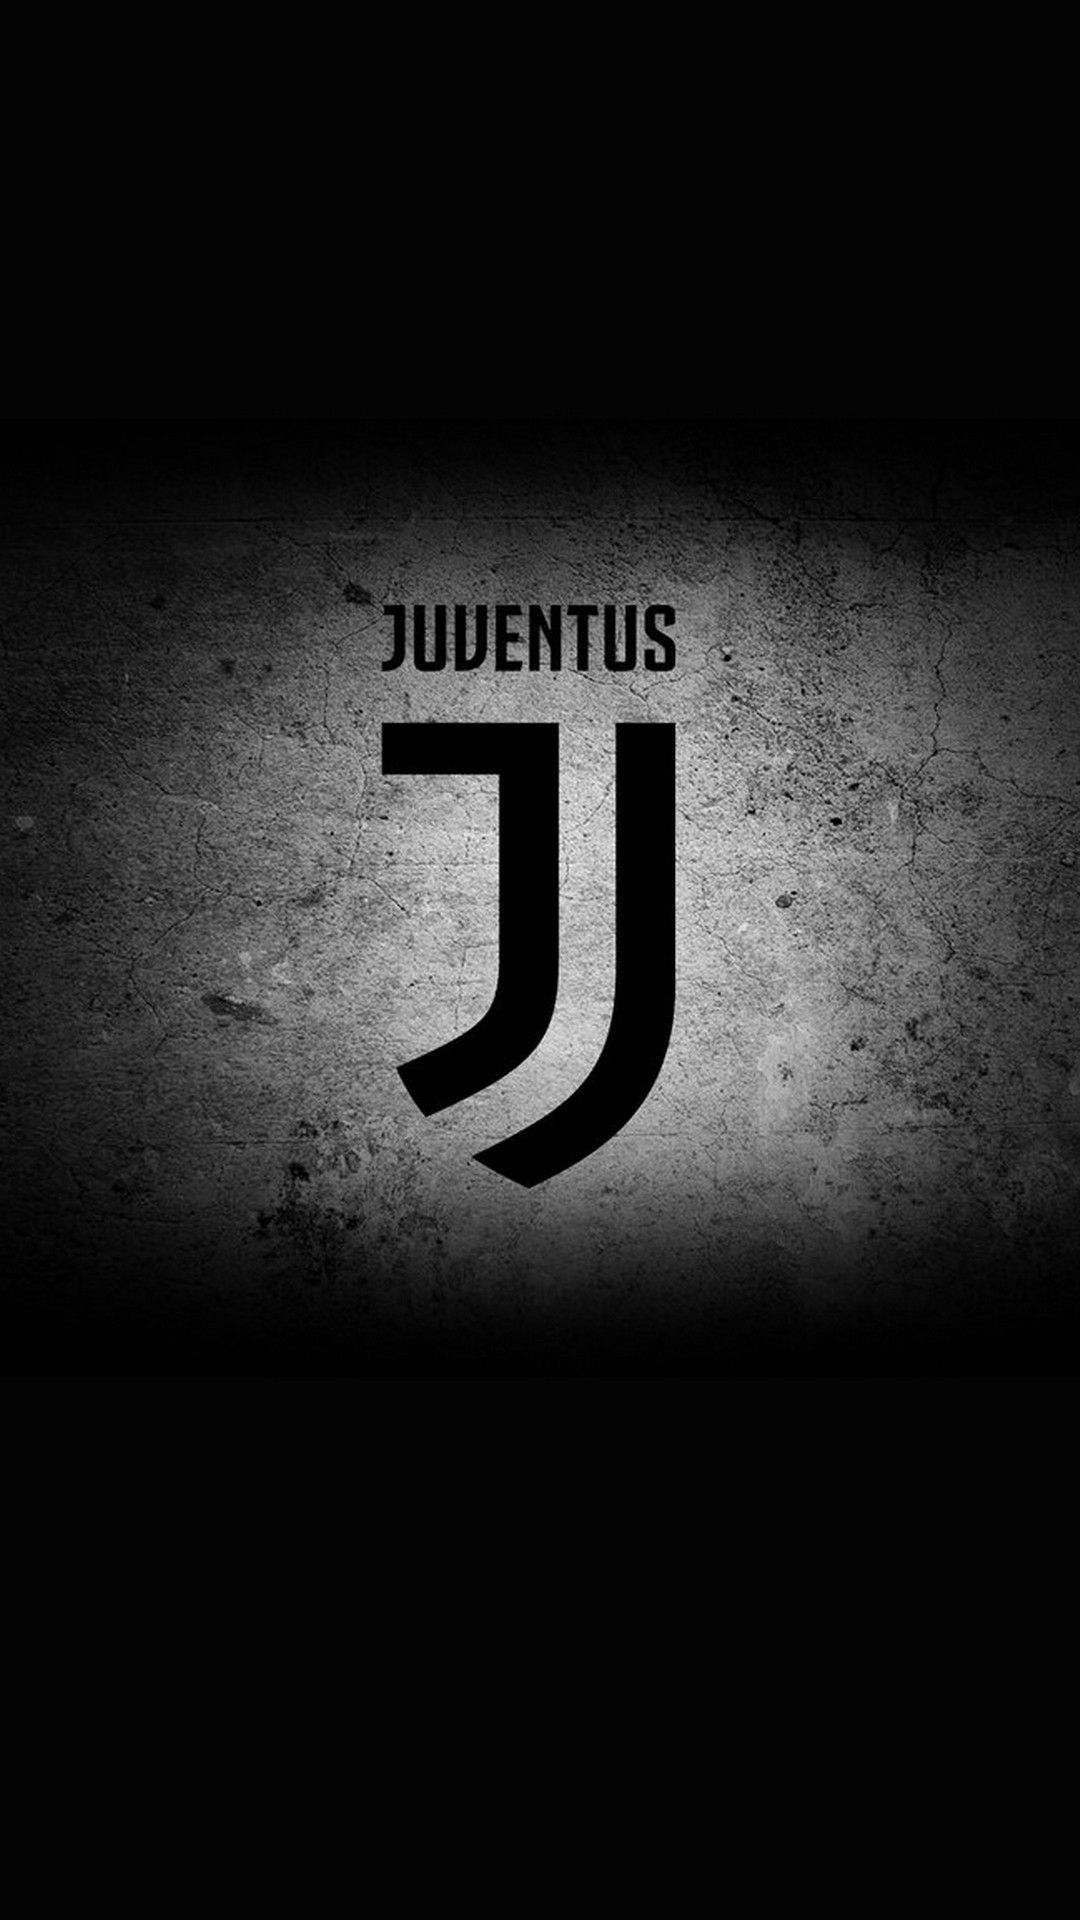 2017 New Logo Juventus IPhone Wallpaper